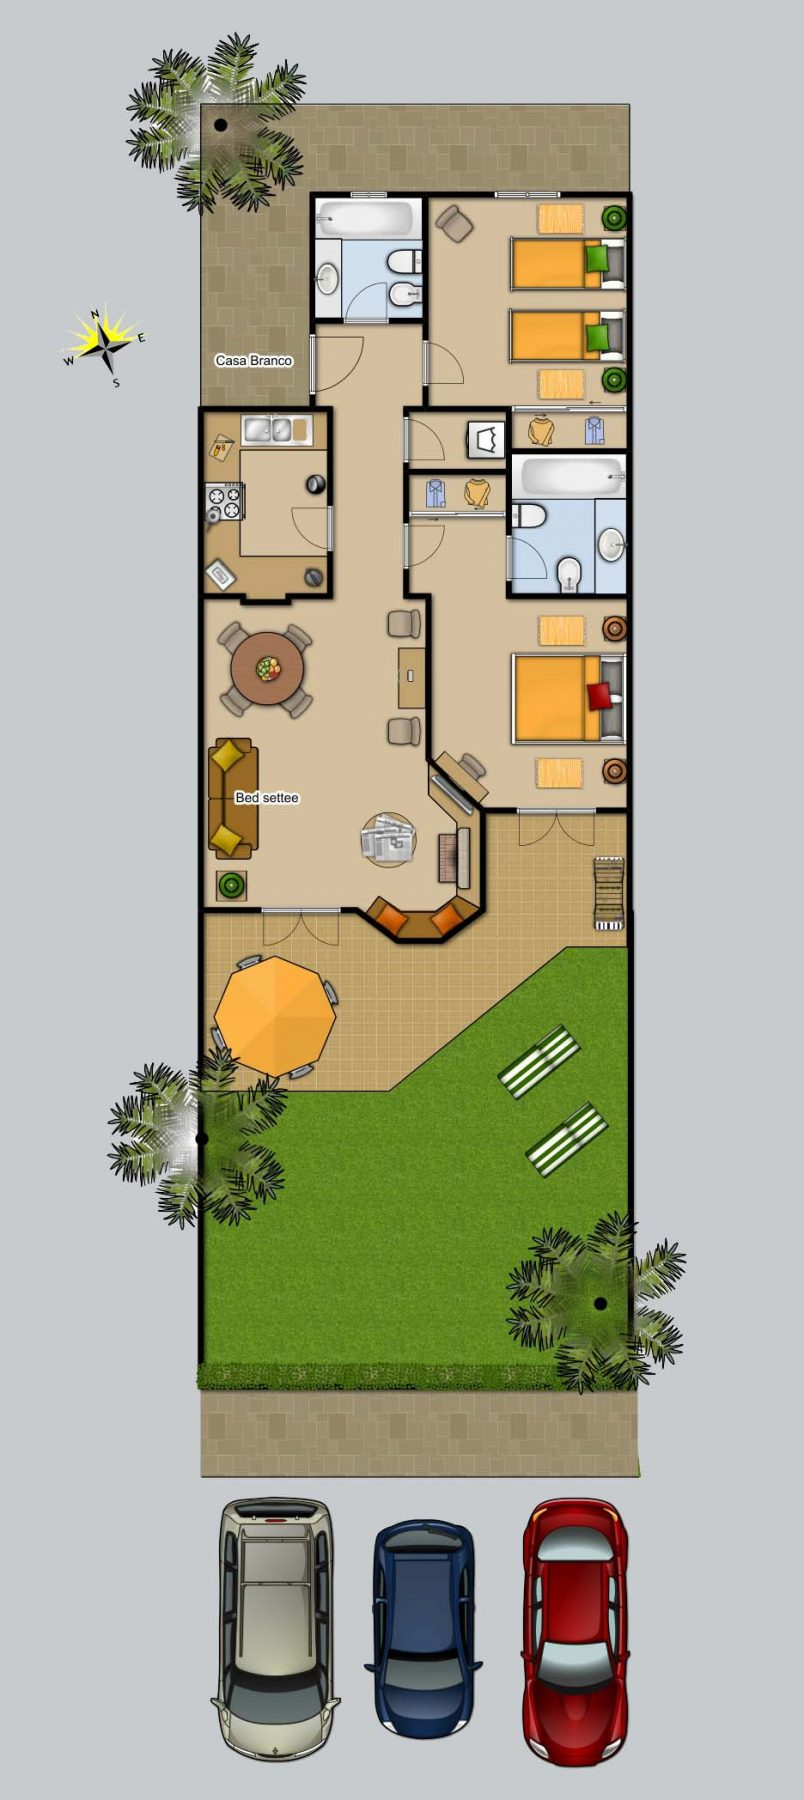 Floor plan for Casa Branco